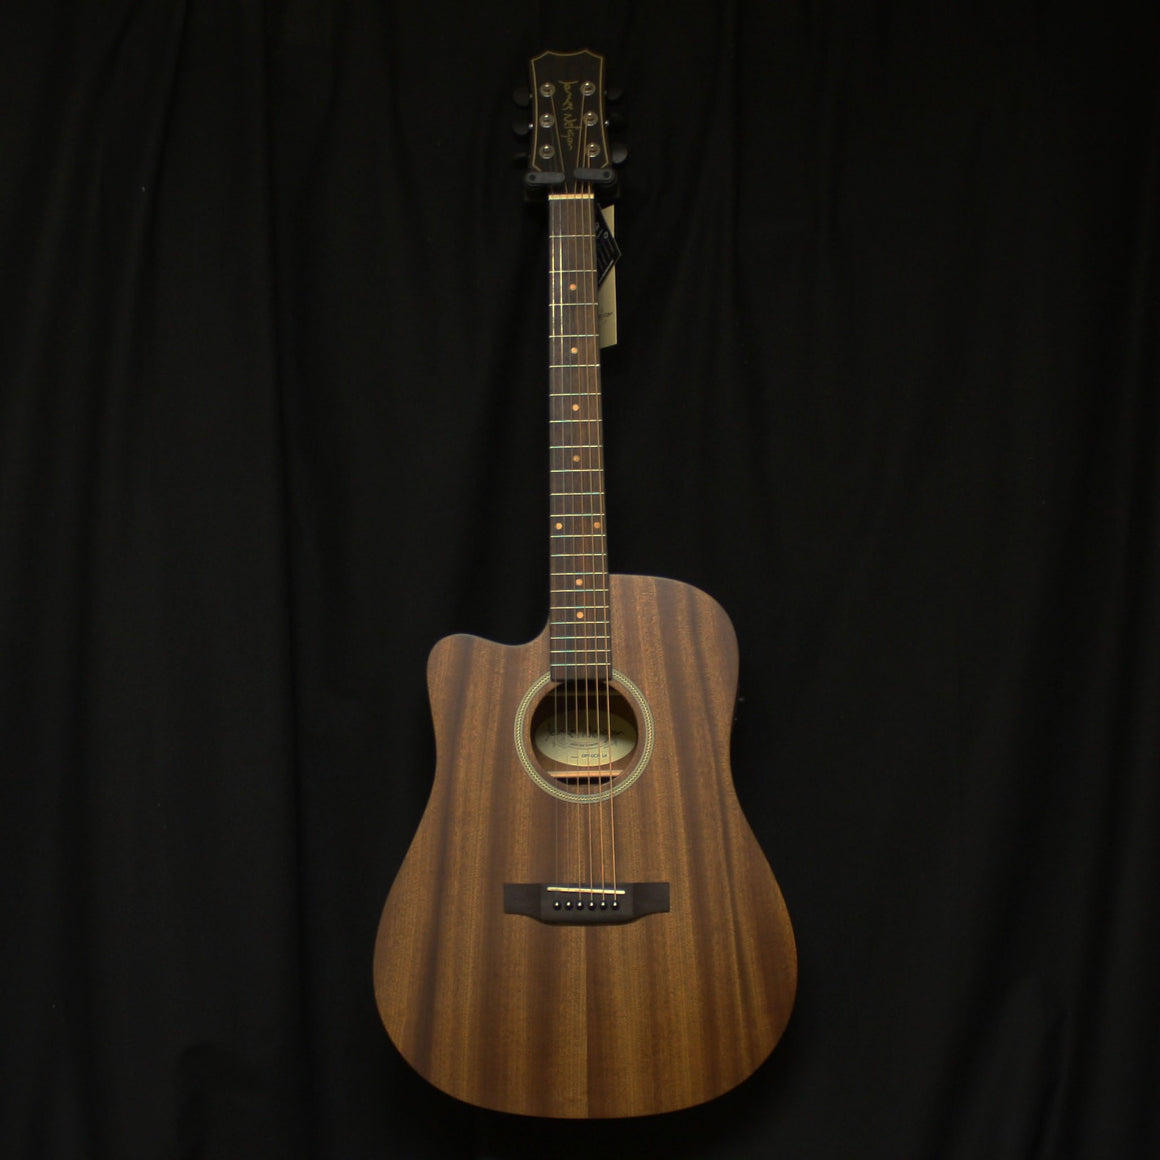 Stagg Acoustic Guitar Stagg Left Handed James Neligan DEV-DCFI Deveron series Acoustic Electric Guitar